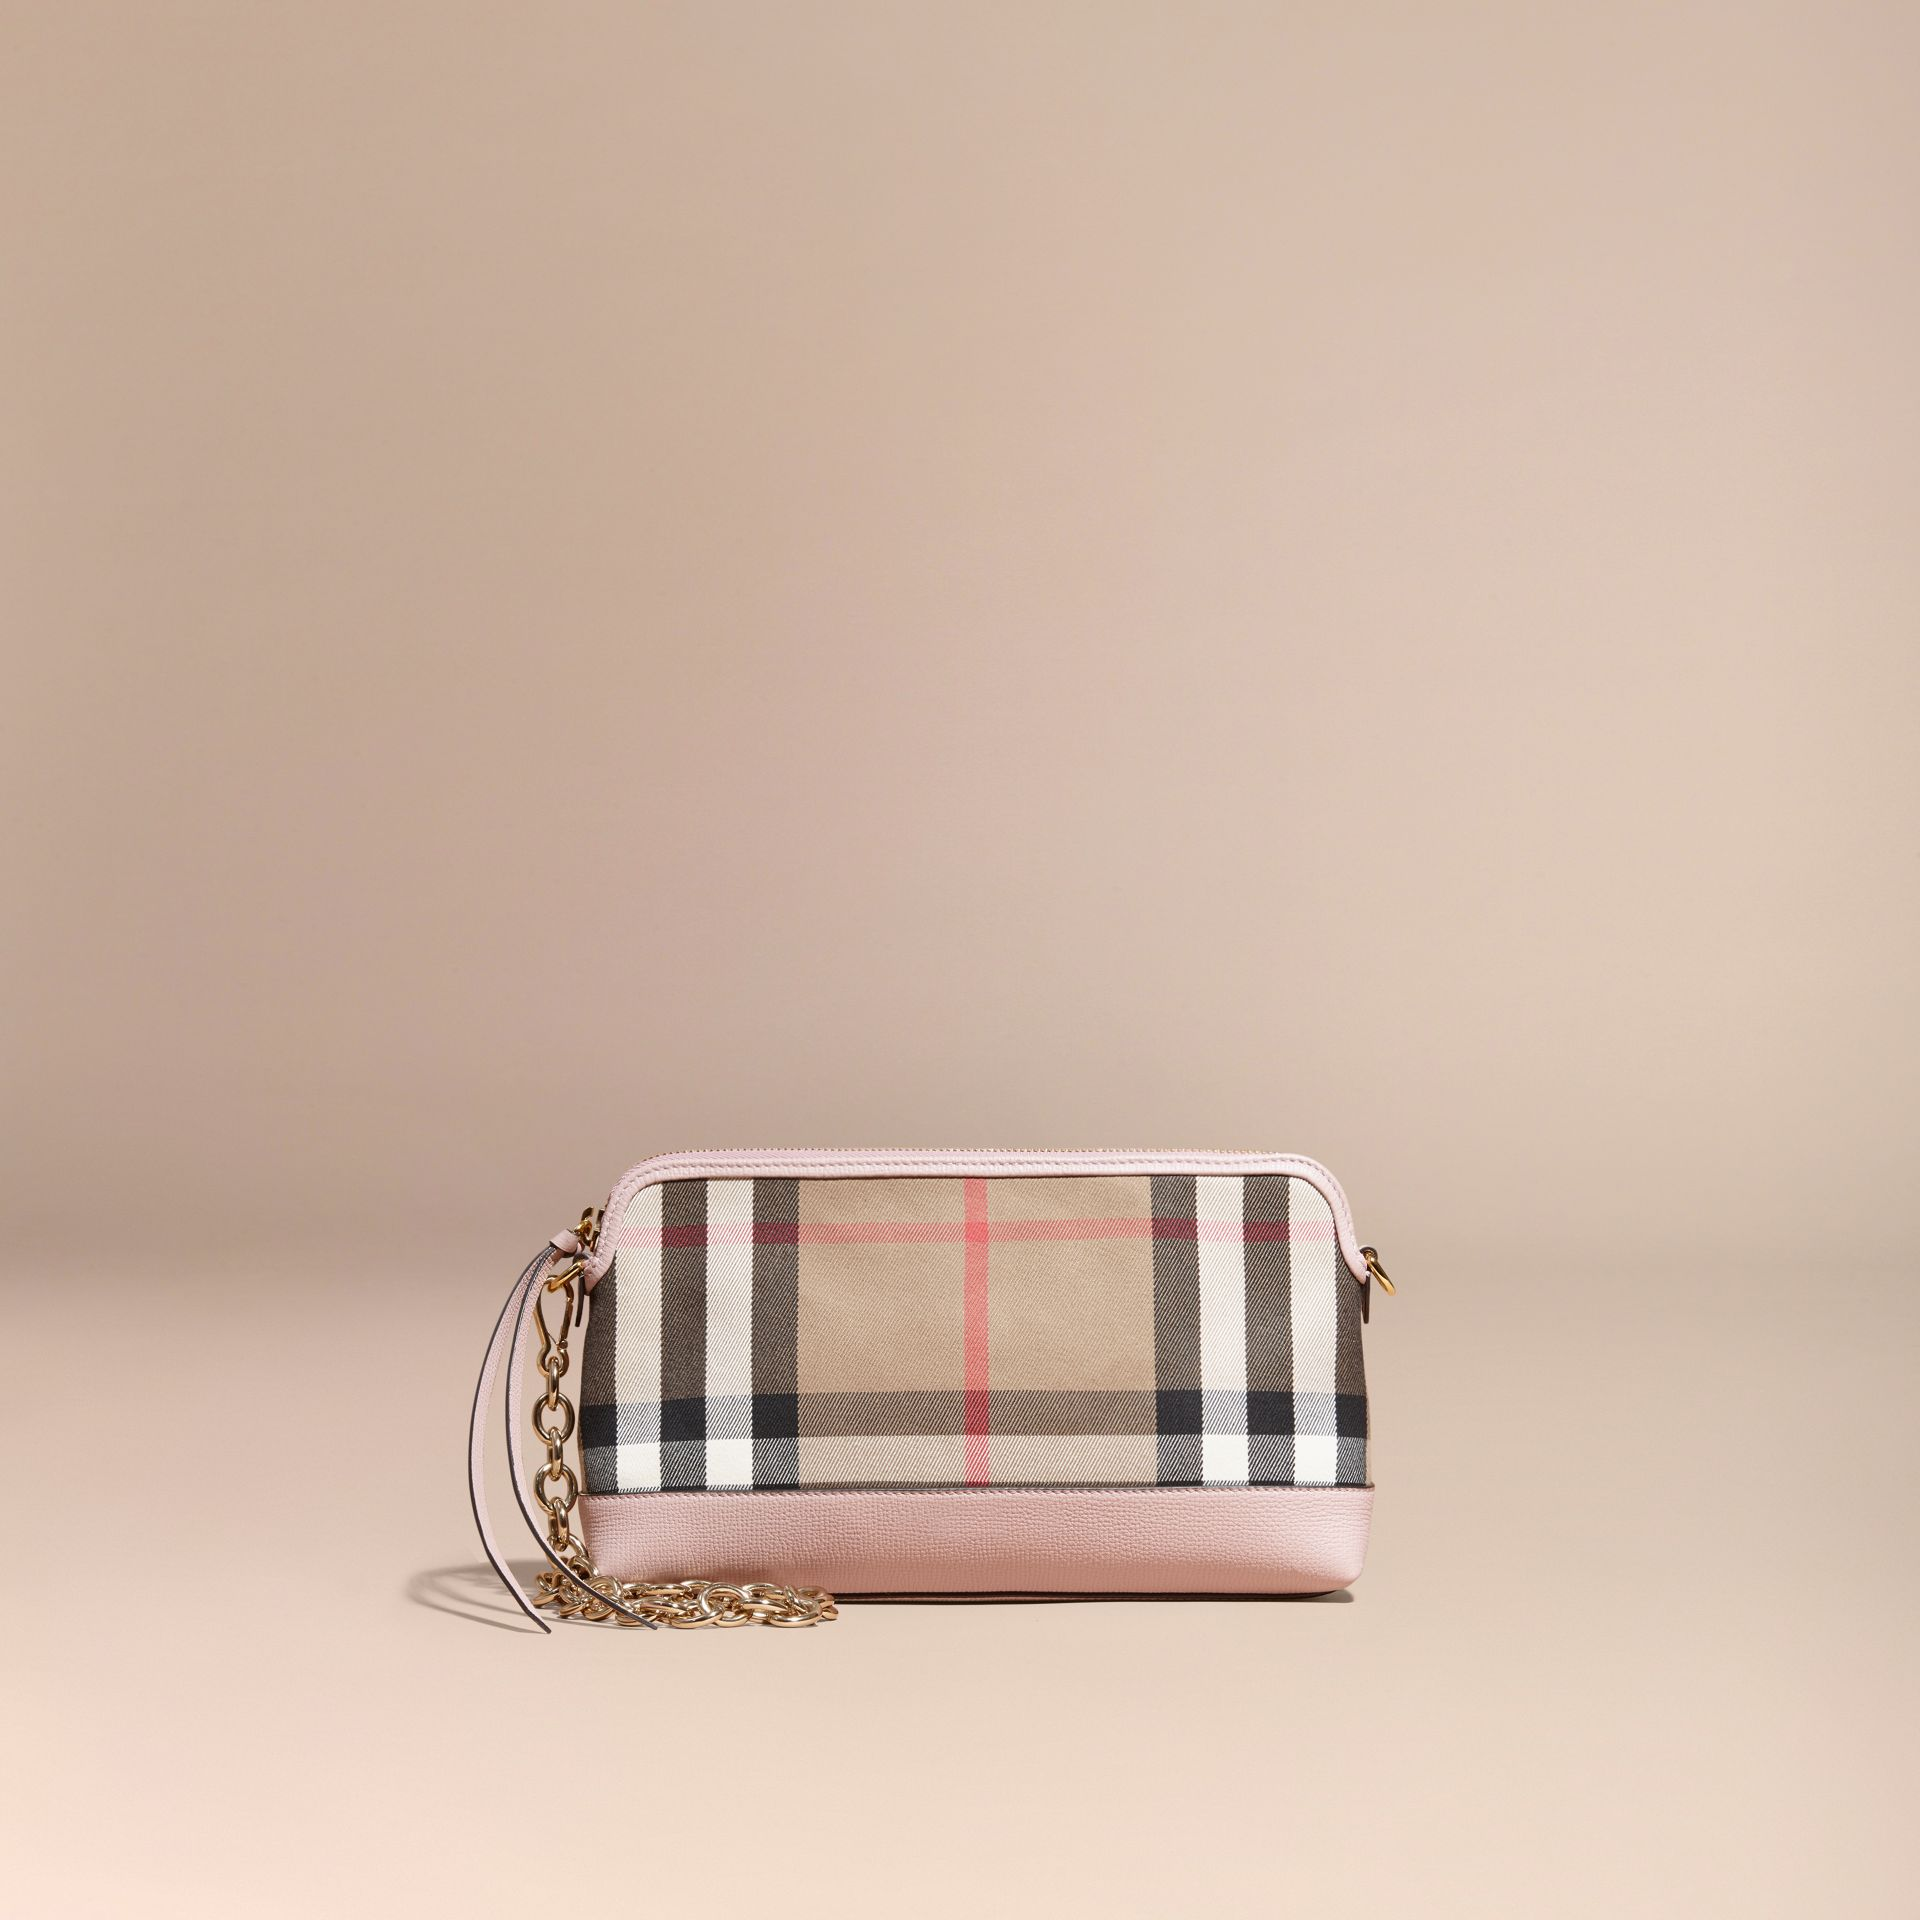 House Check and Leather Clutch Bag in Pale Orchid - Women | Burberry - gallery image 8